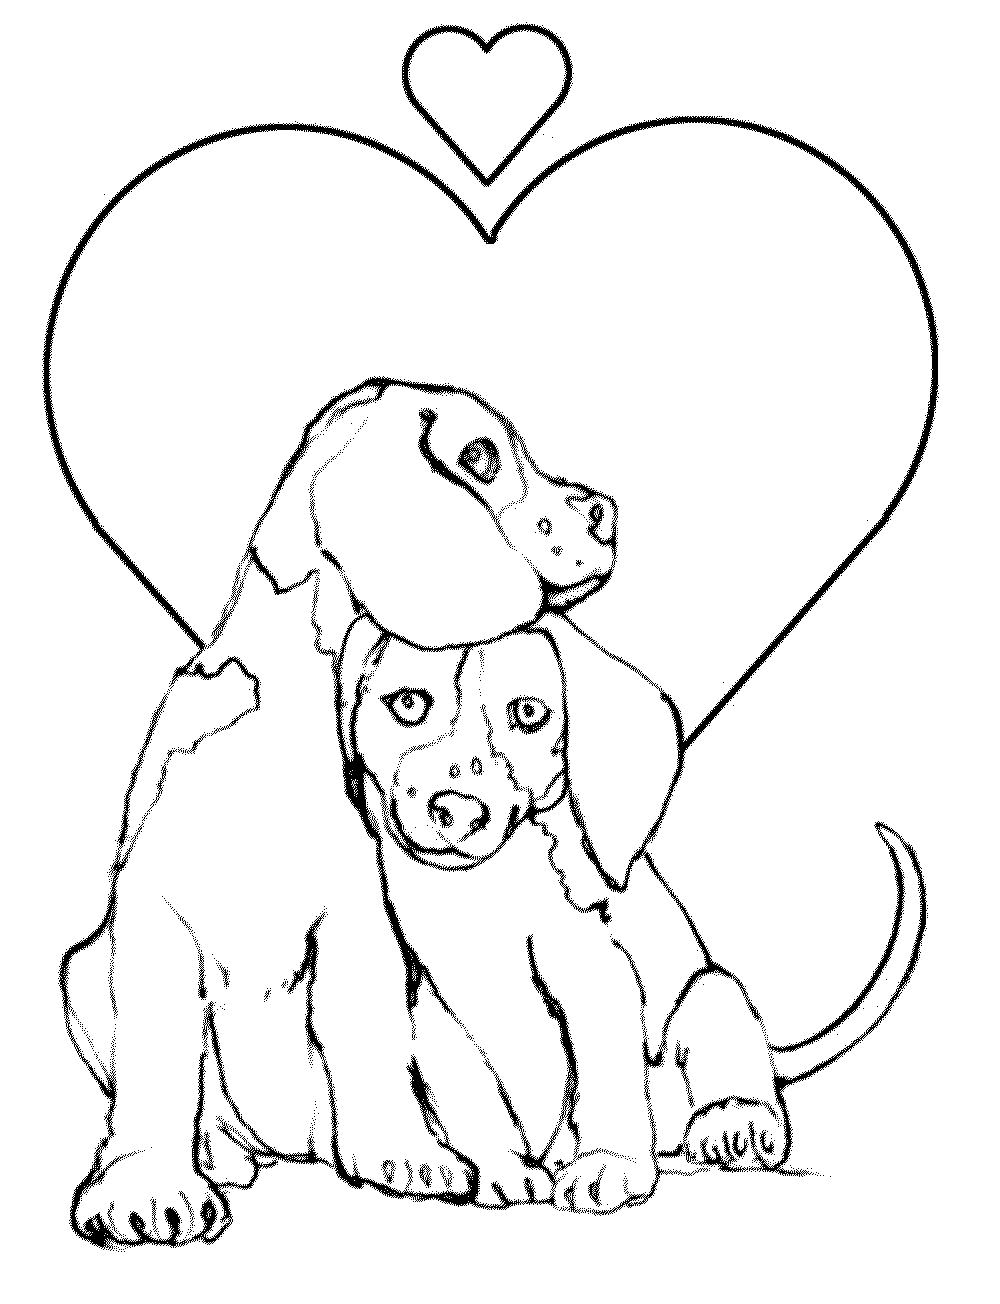 harry the dirty dog coloring page - Dogs Coloring Pages